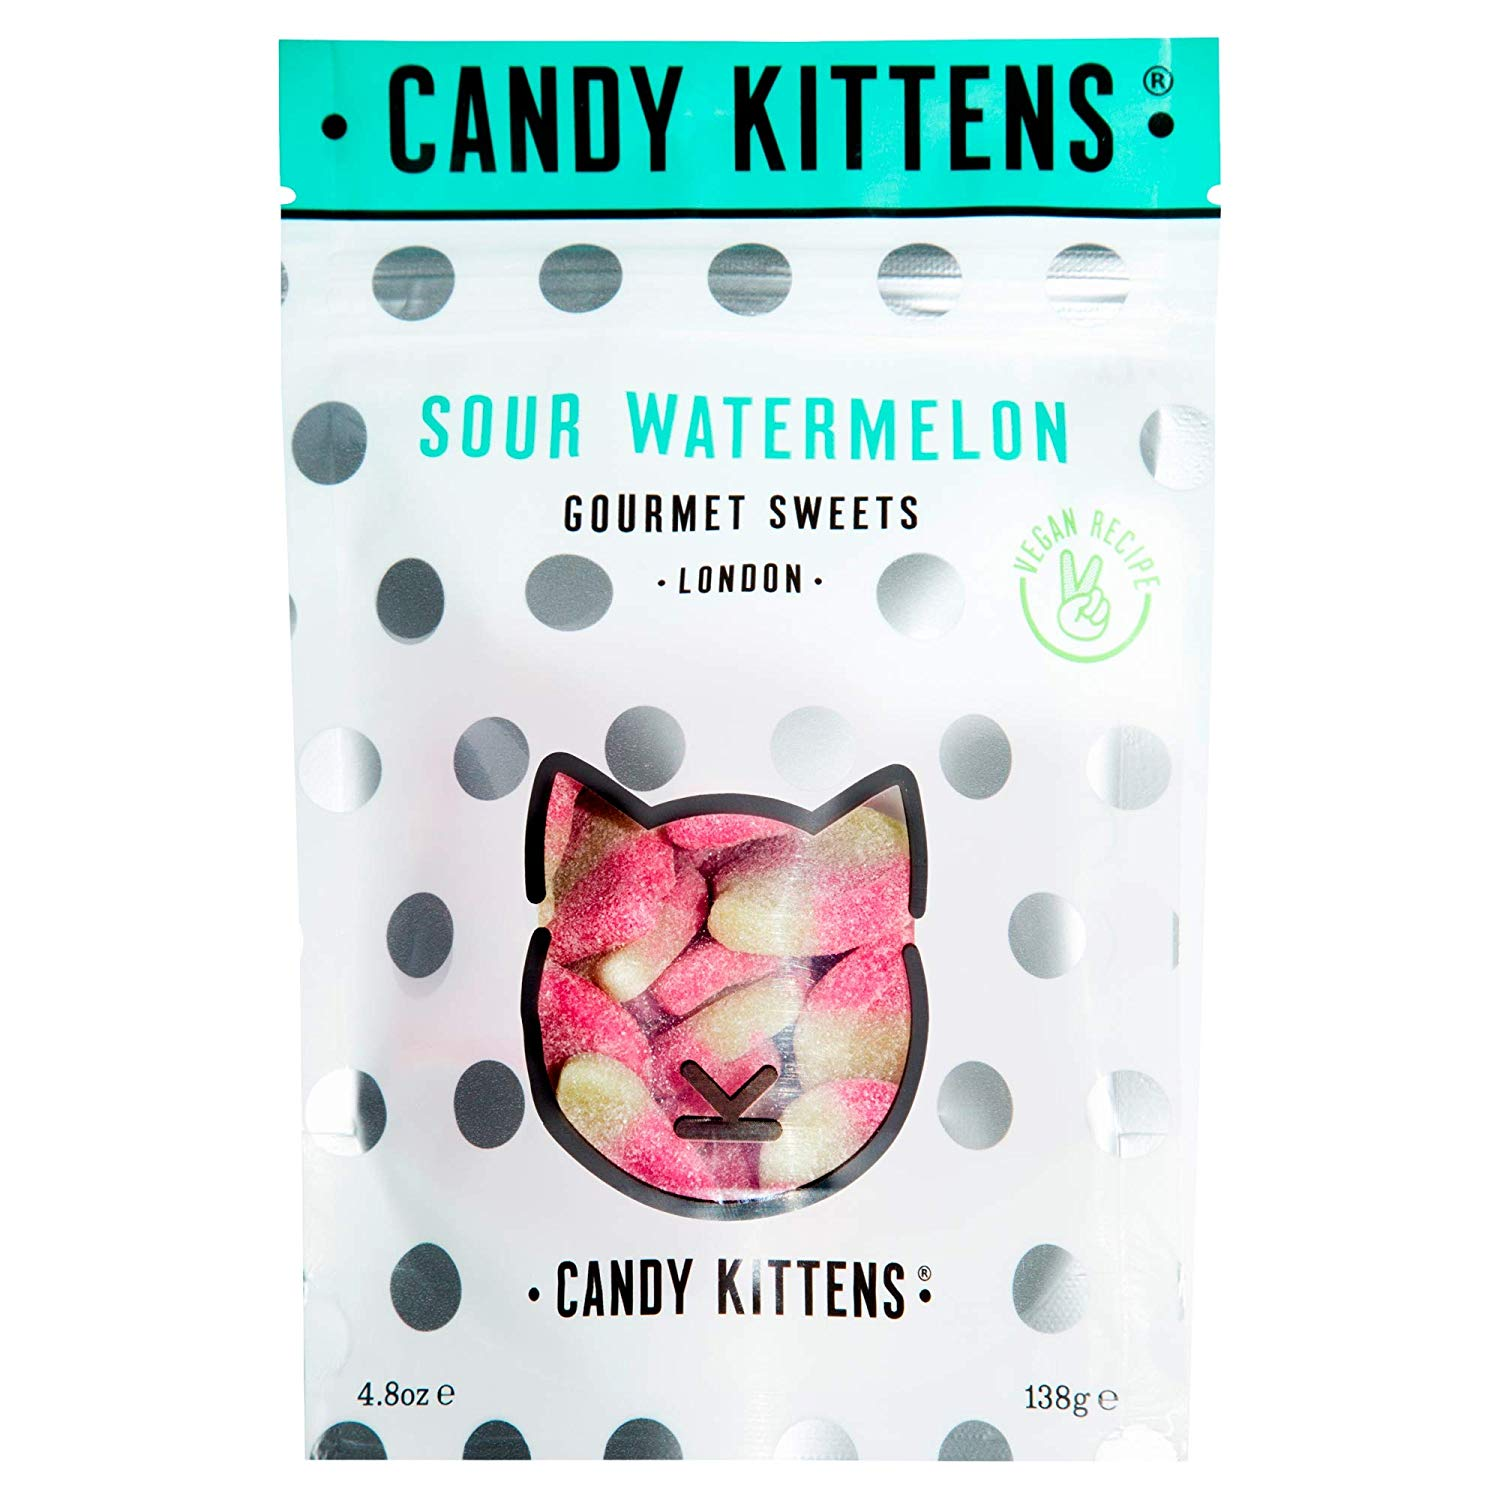 Candy Kittens Vegan Sweets – Gluten-Free – Natural Fruit Flavour Candy 138g(add-on item)